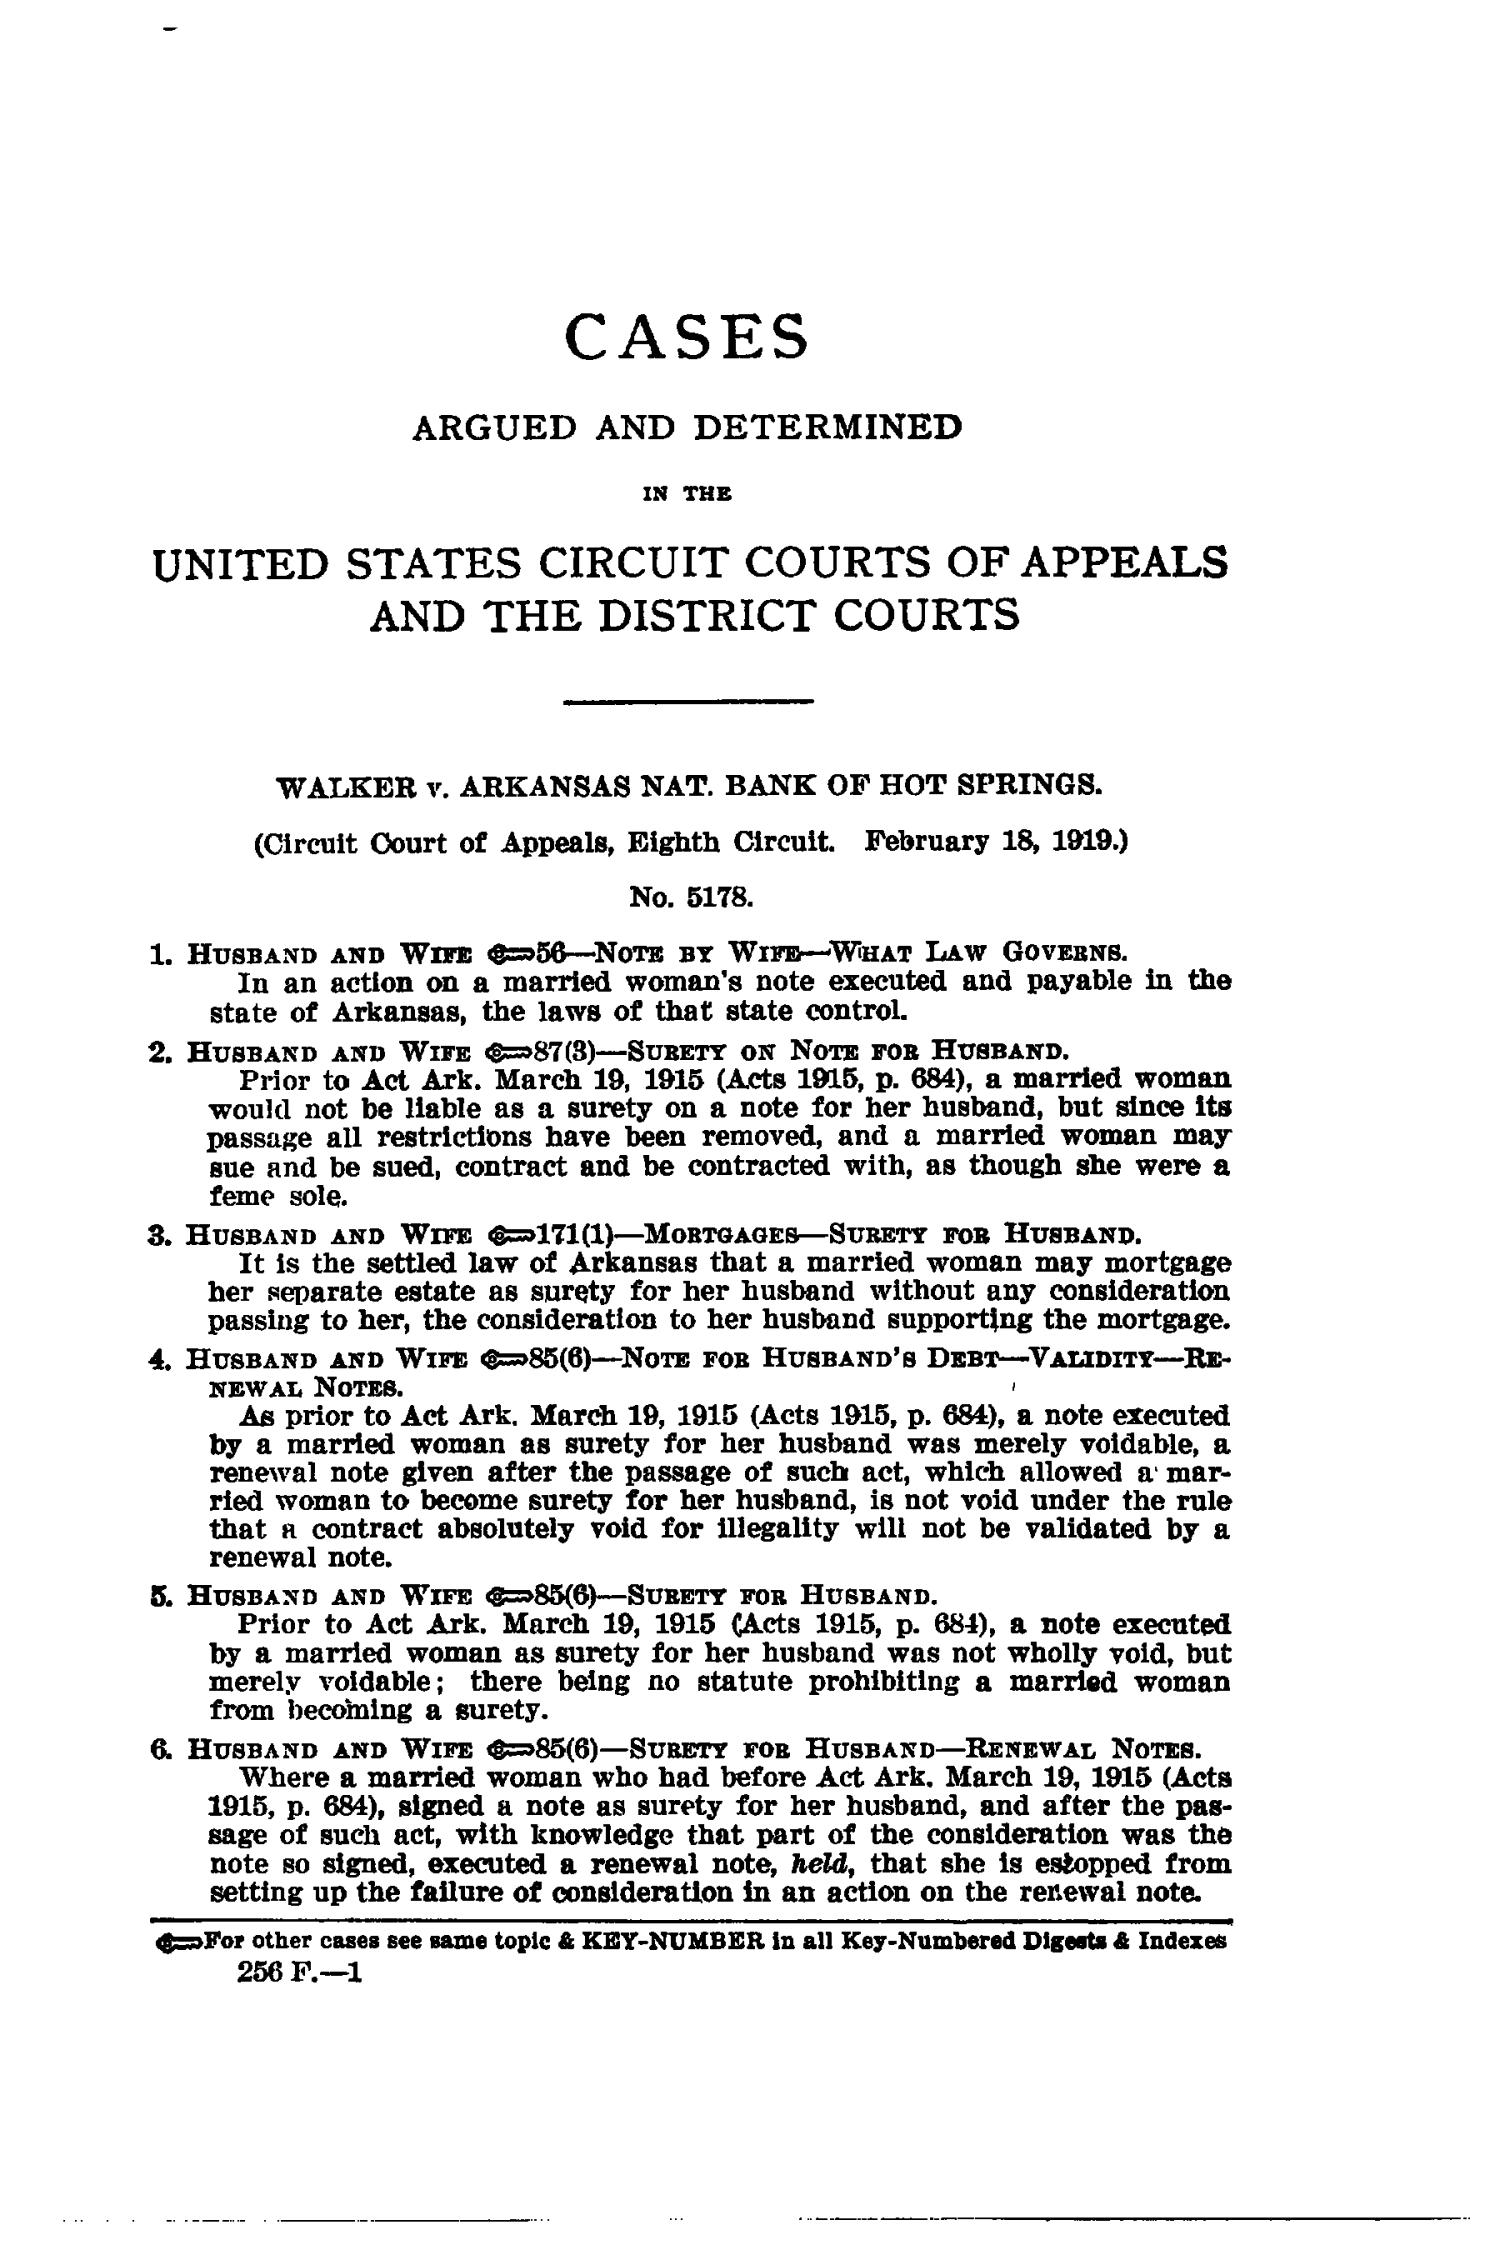 The Federal Reporter with Key-Number Annotations, Volume 256: Cases Argued and Determined in the Circuit Courts of Appeals and District Courts of the United States, May-July, 1919.                                                                                                      1